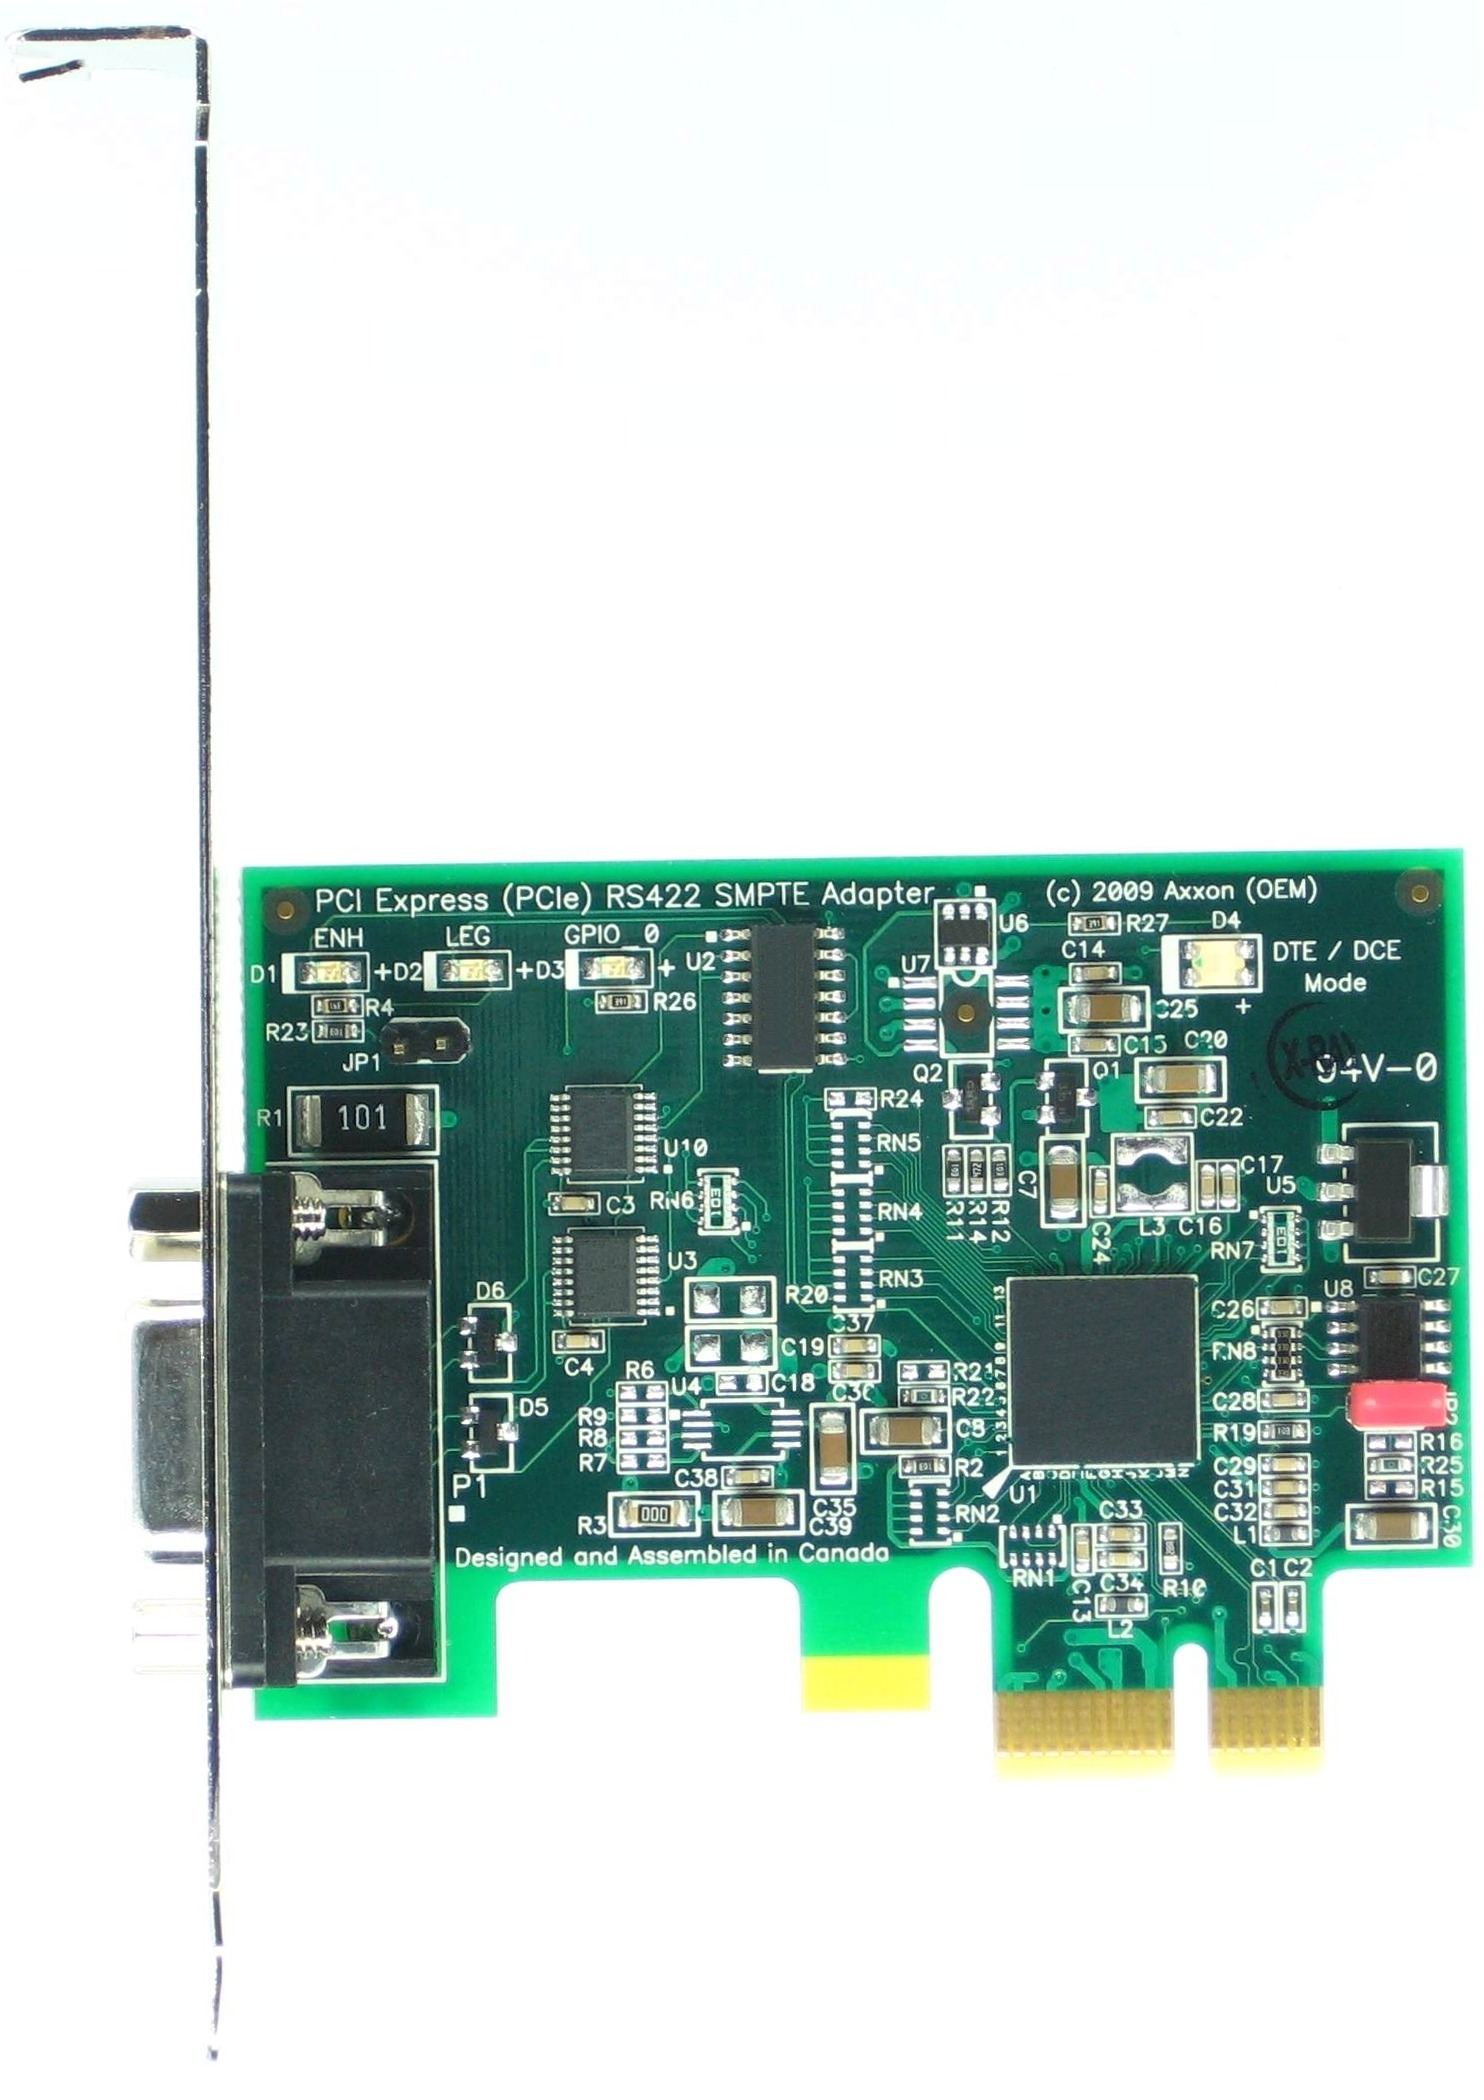 Click for large picture of the PCI Express (PCIe) LF774KB SMPTE RS422 adapter